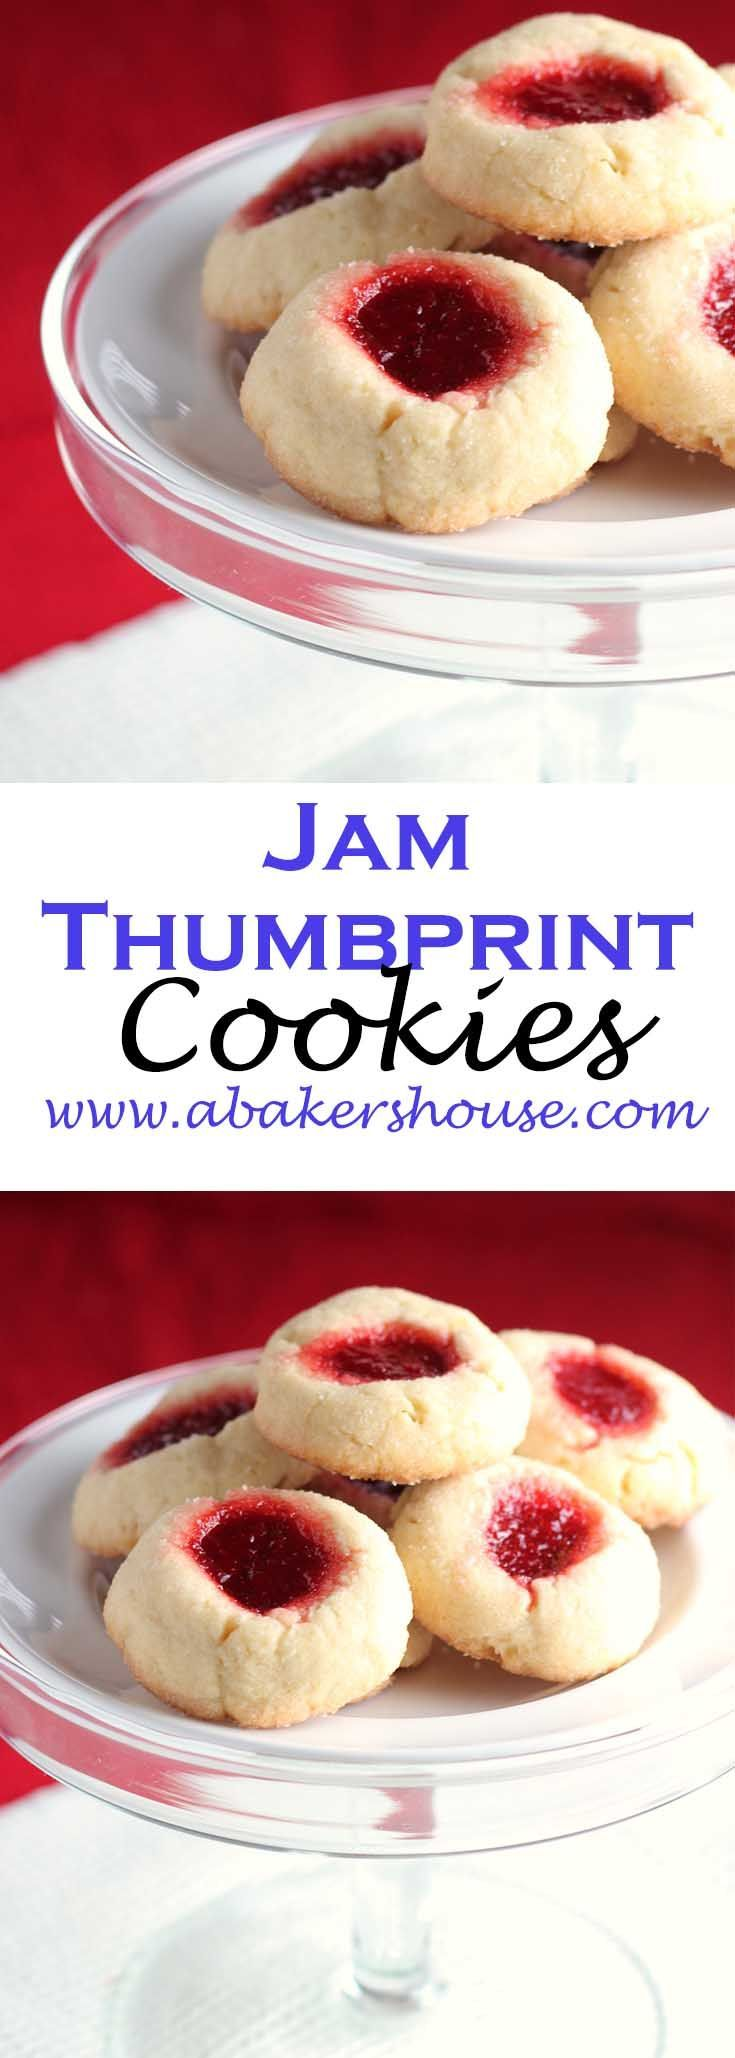 Jam thumbprint cookies are a simple cookie that can change with the seasons. Add red strawberry preserves to make this a holiday cookie or use lemon curd to make this perfect for welcoming spring. In the fall a filling could be pumpkin butter and in the summer a fresh puree of berries. Made by Holly Baker at www.abakershouse.com